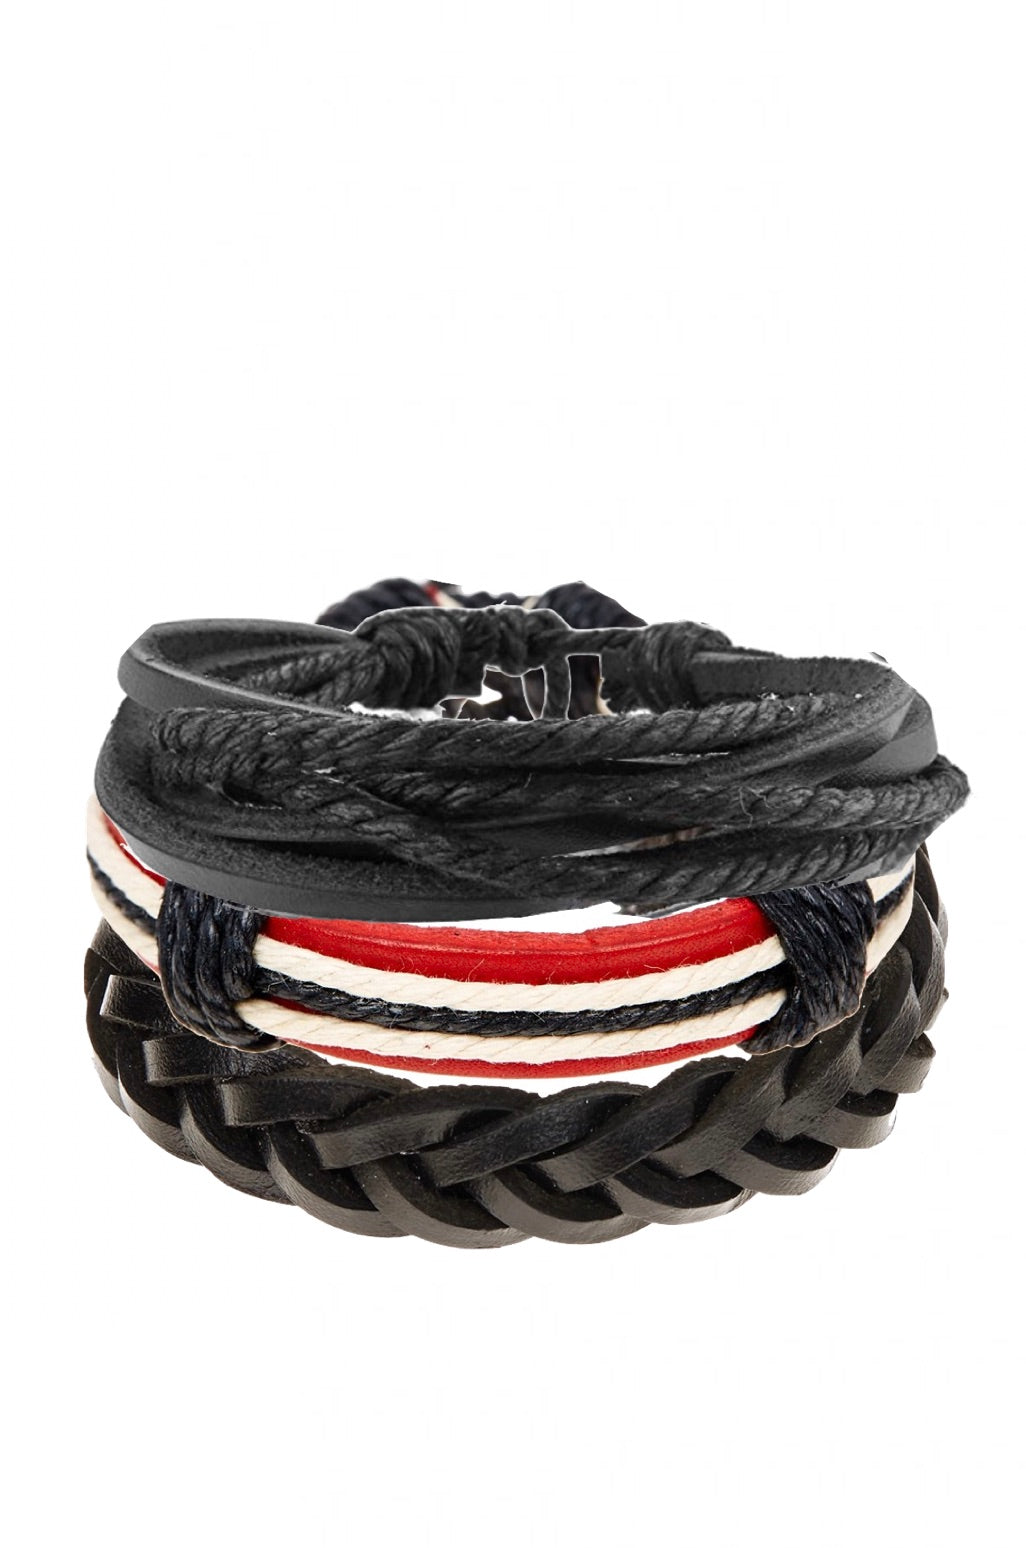 Set of 3 Red and Black Leather Woven Bracelets